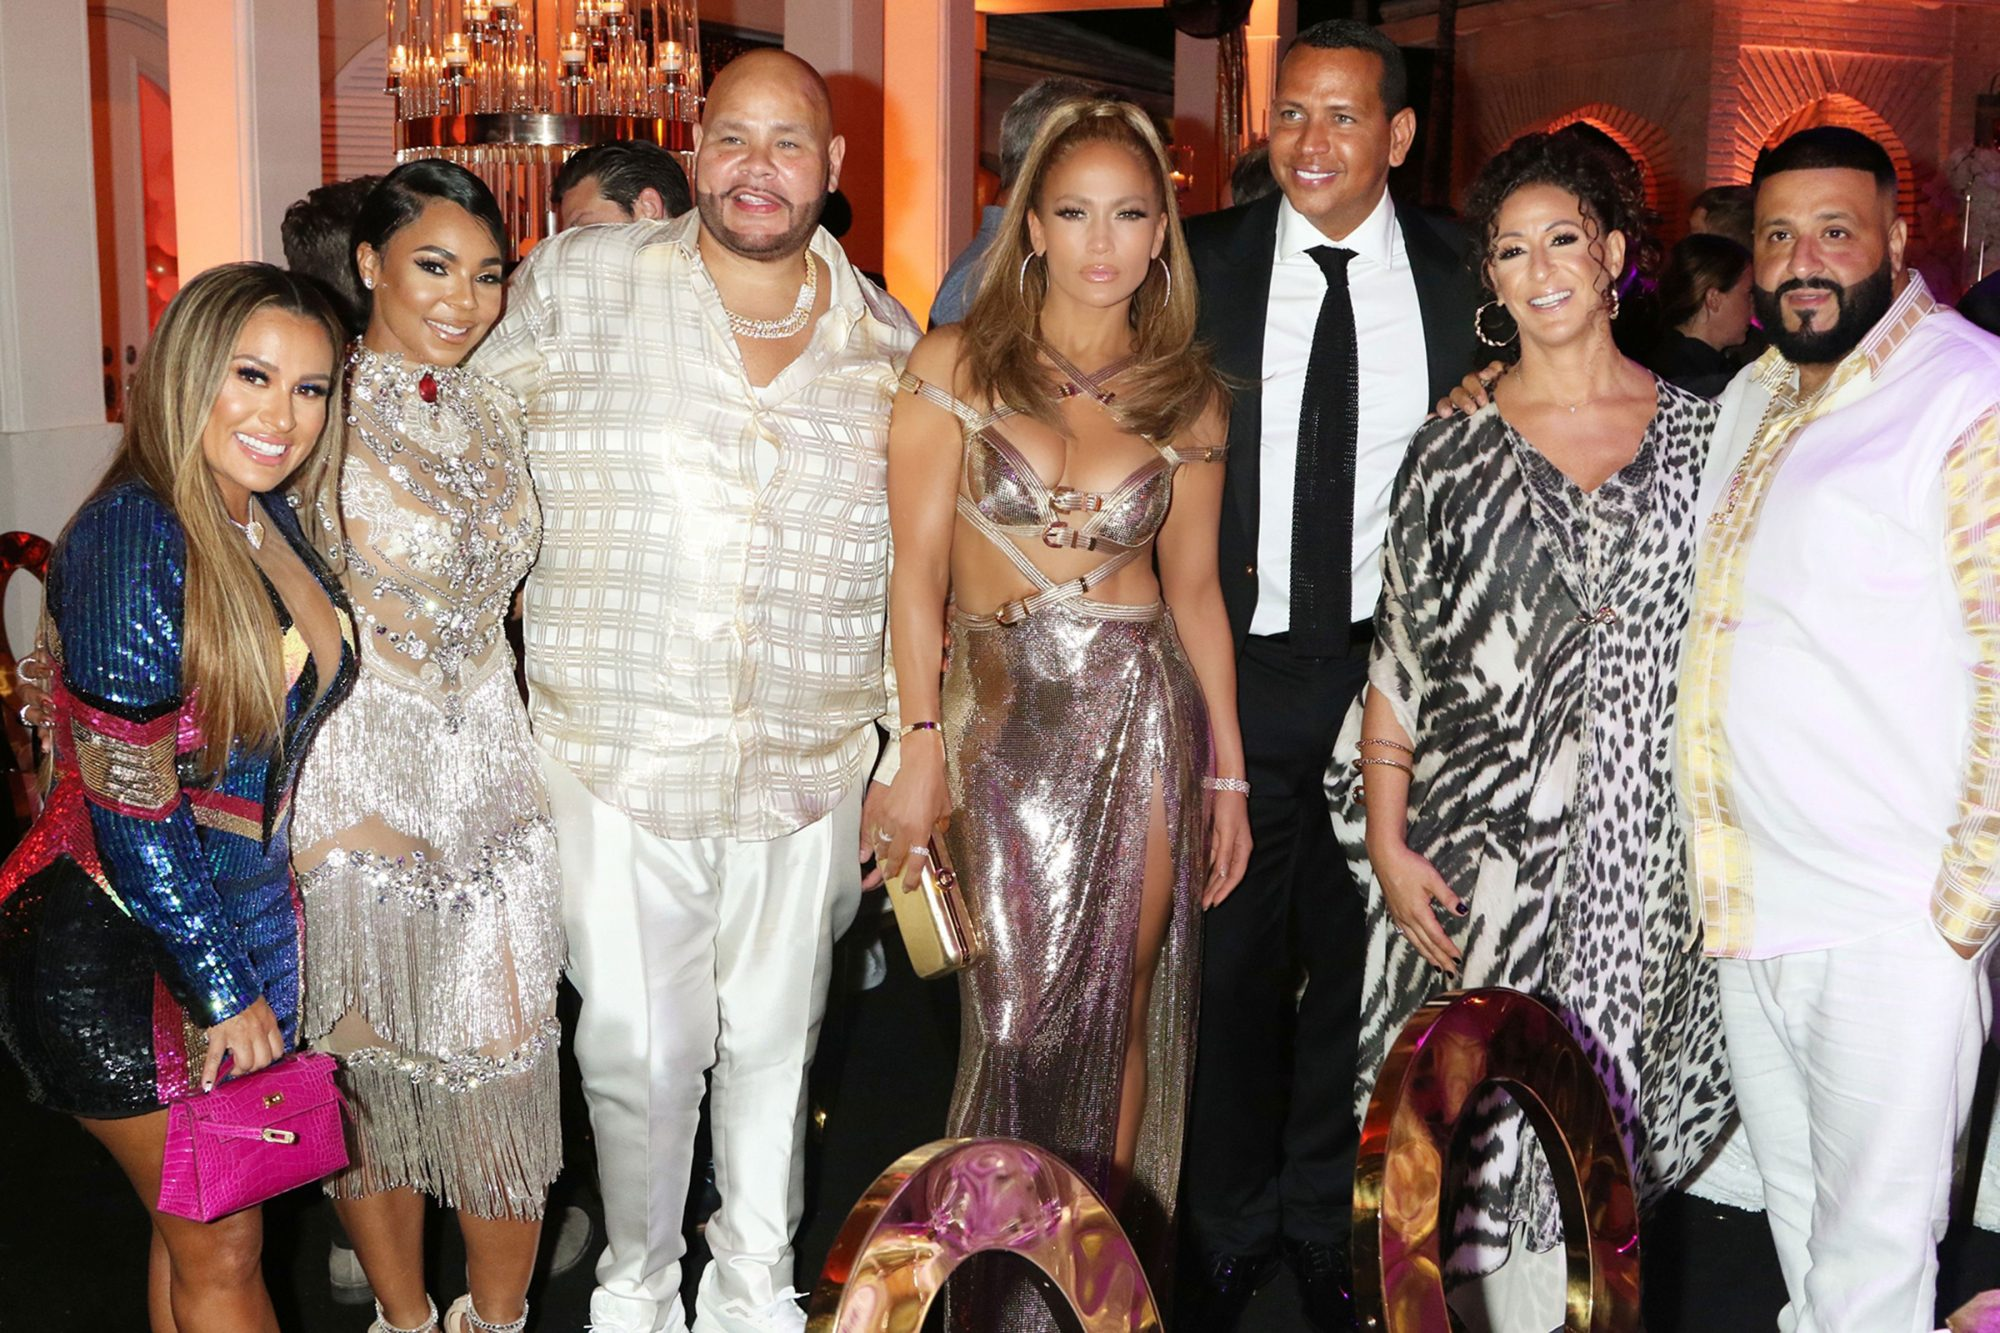 Jennifer Lopez's Stylist Shared a Behind-the-Scenes Look at Her Custom Cut-Out Birthday Dress